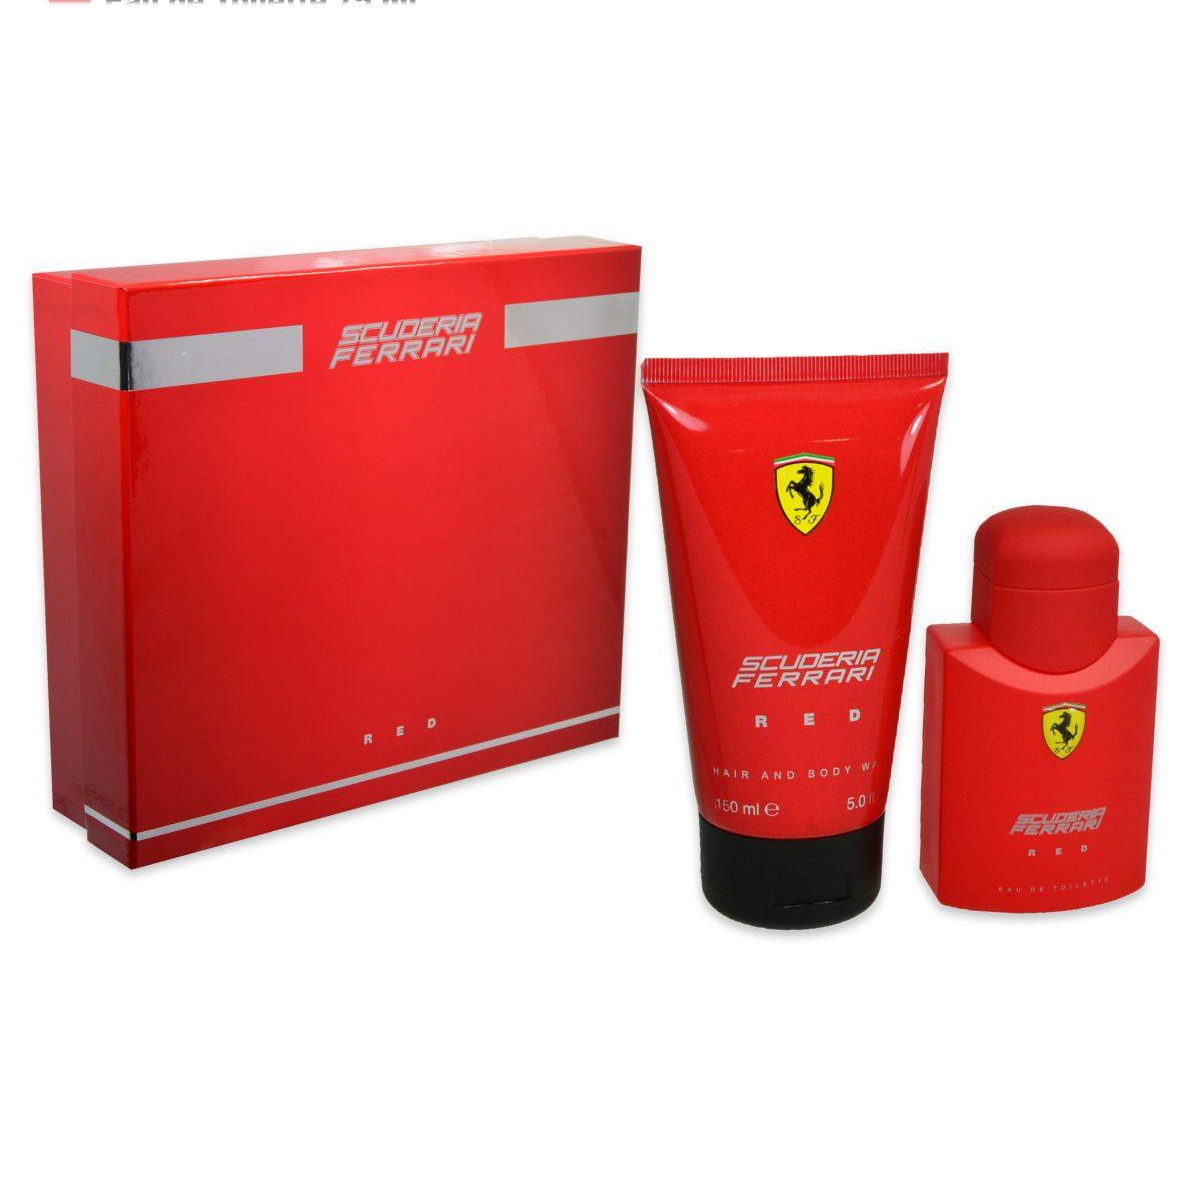 Ferrari  Cofanetto scuderia ferrari red  eau de toilette 75 ml  shower gel 150 ml